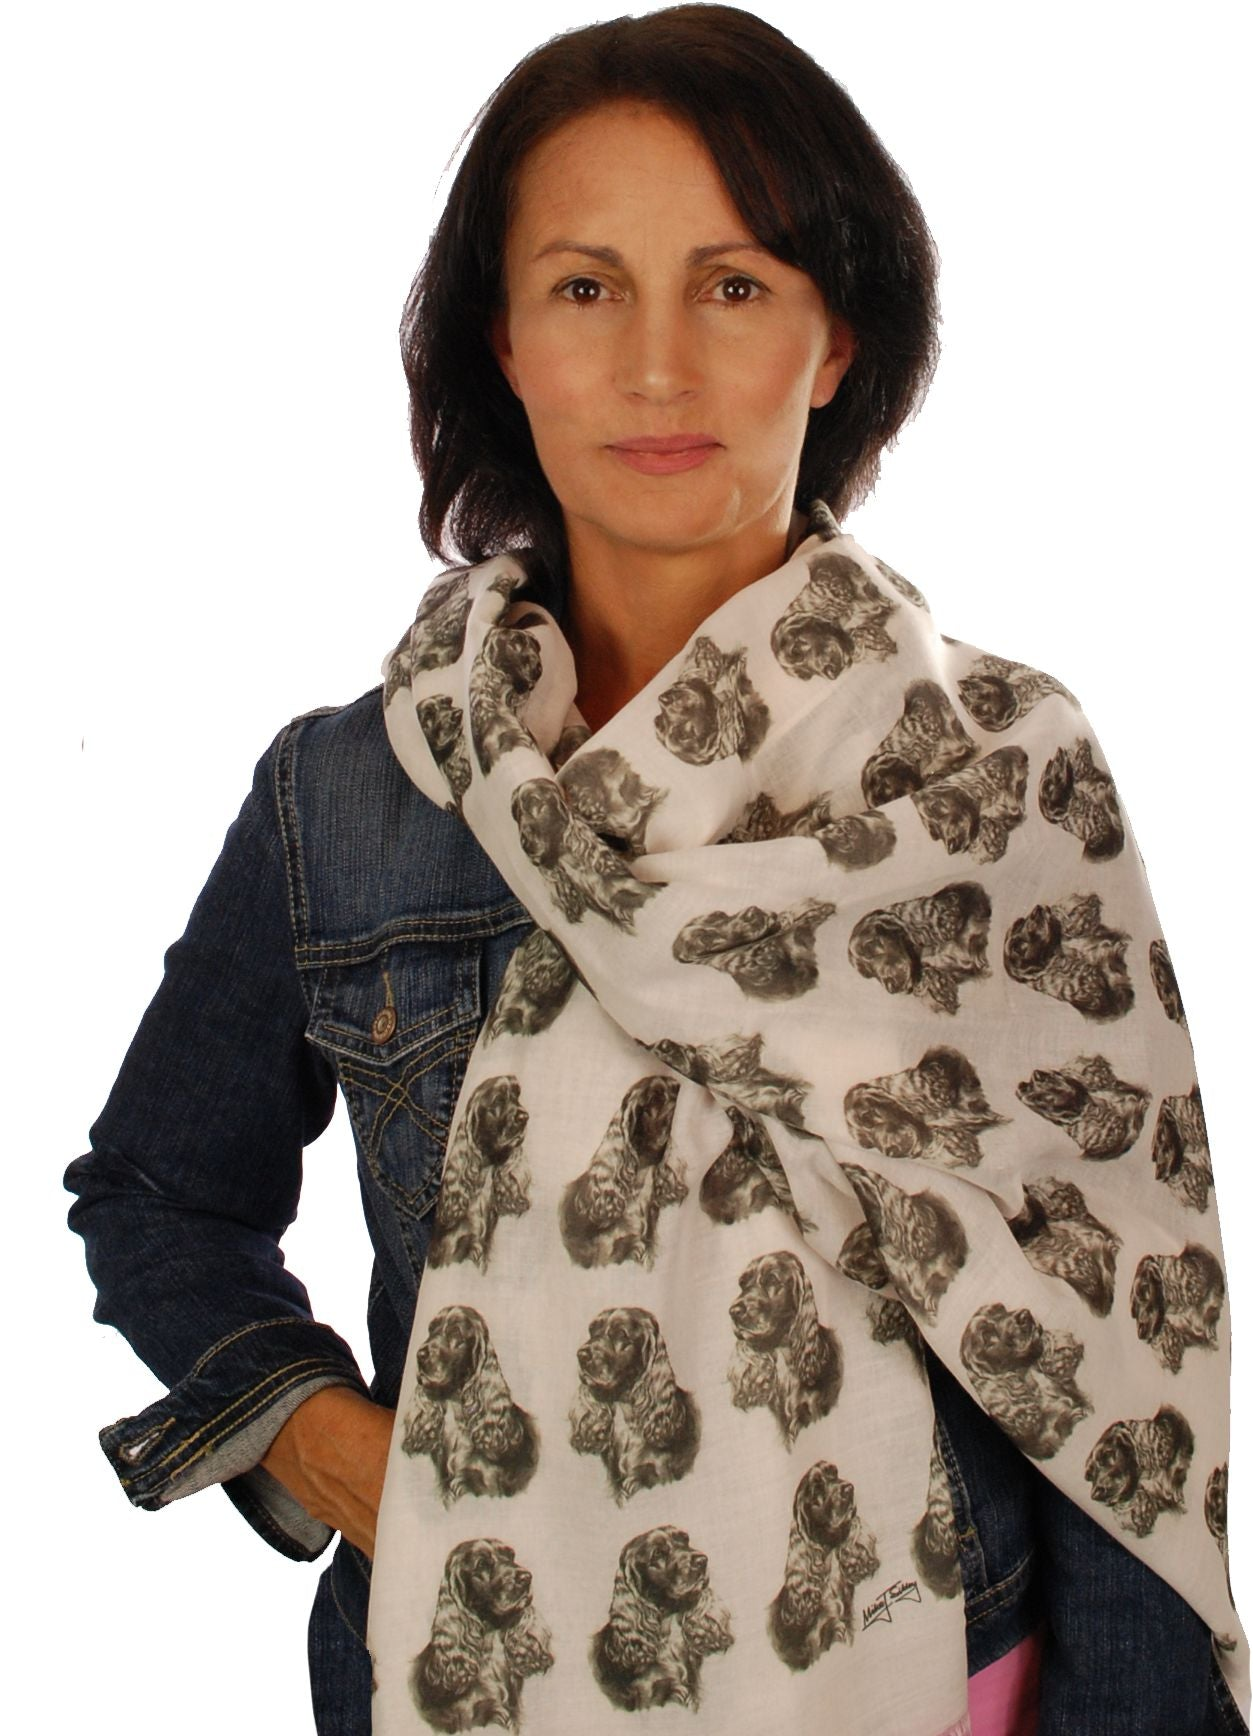 Cocker Spaniel Scarf - Mike Sibley Cocker Spaniel design Ladies Fashion Scarf – Hand Printed in the UK